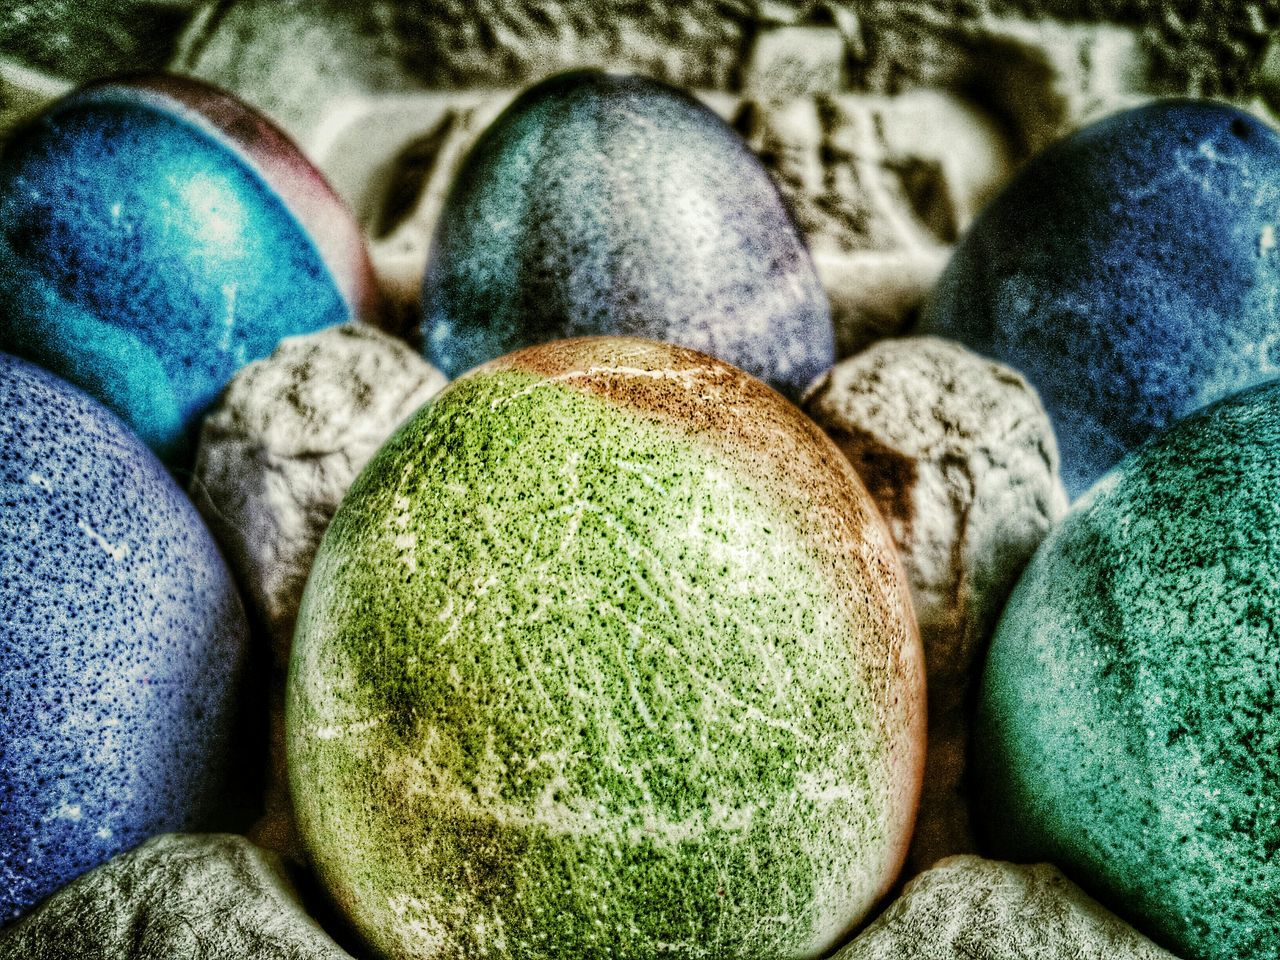 Colored Easter eggs Easter Eggs Easter Happy Easter Holiday Color Eye4photography  Color Photo Color Photography Colors EyeEmBestPics Colored Egg Colored Eggs Editorial Photography Editorial  Coloringeggs Coloring Eggs Easter Decoration Easter Ready Easter Egg Eggshell Eggs... Easteregg Close-up Close Up Closeup